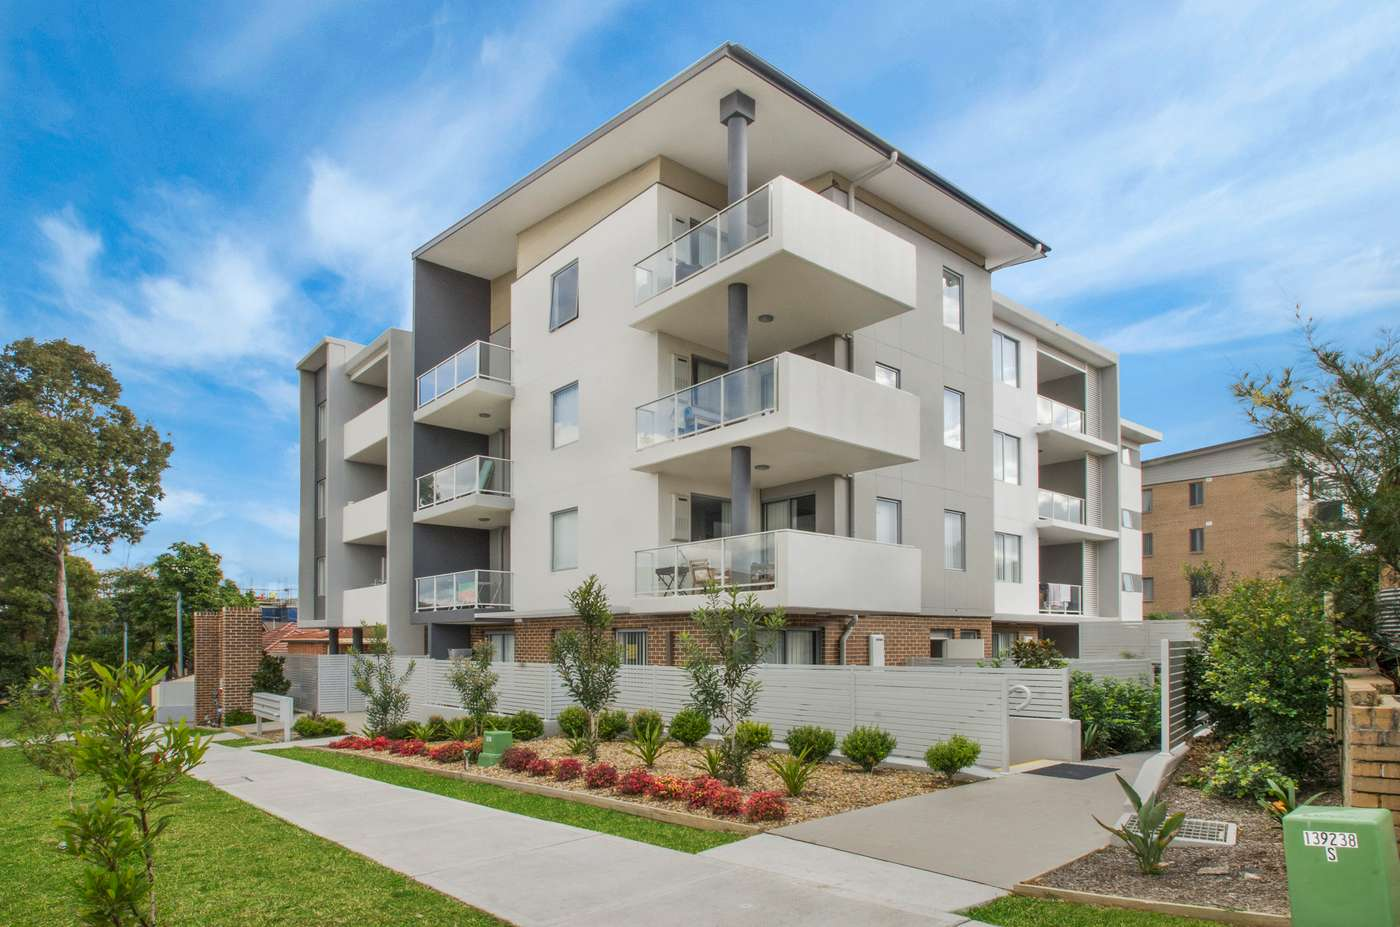 Main view of Homely apartment listing, 13/4 - 6 Peggy Street, Mays Hill, NSW 2145